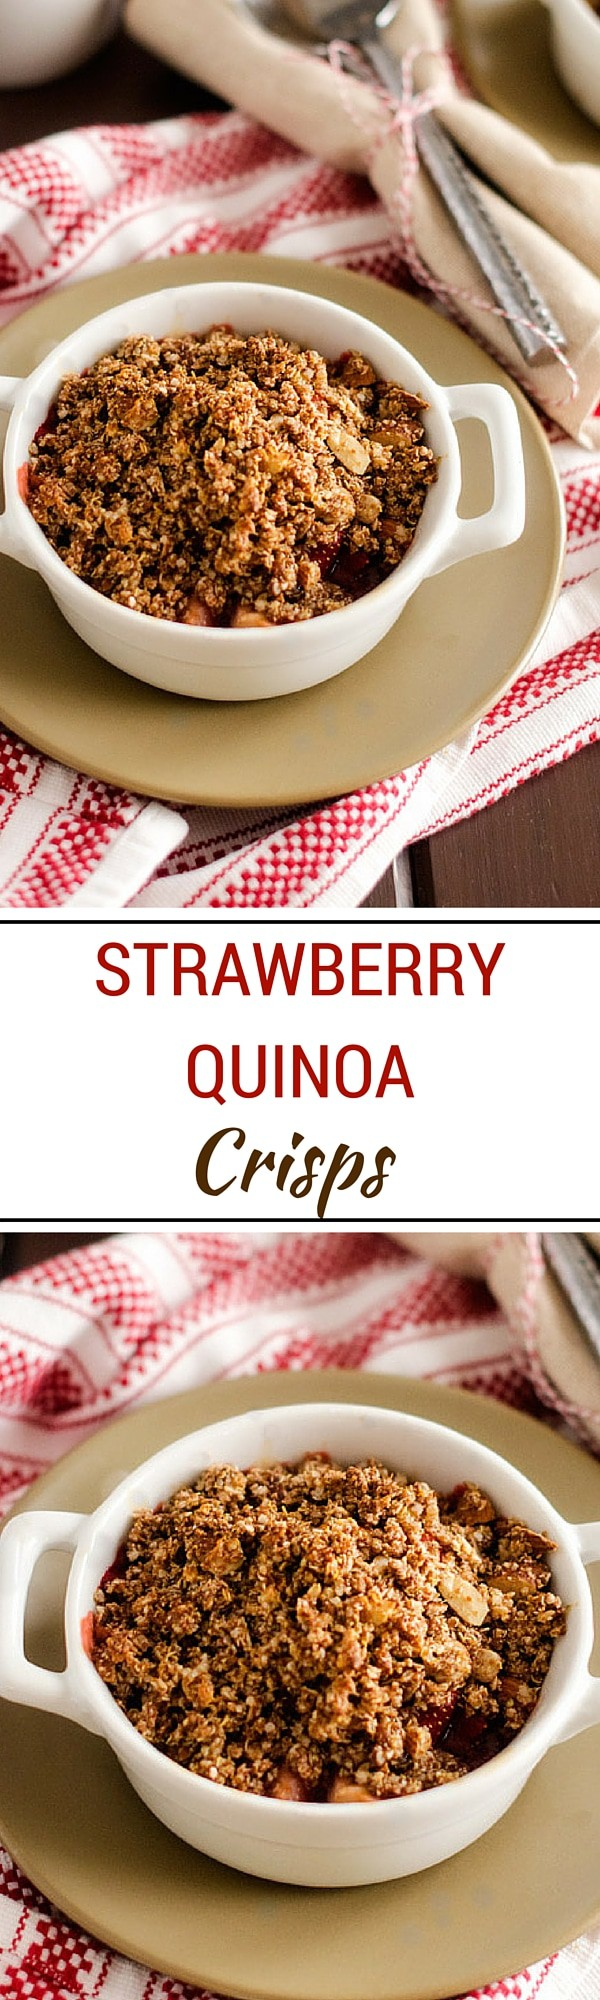 Strawberry Quinoa Crisps - This gluten free and vegan dessert tastes like total indulgence but is packed with nutrition- WendyPolisi.com